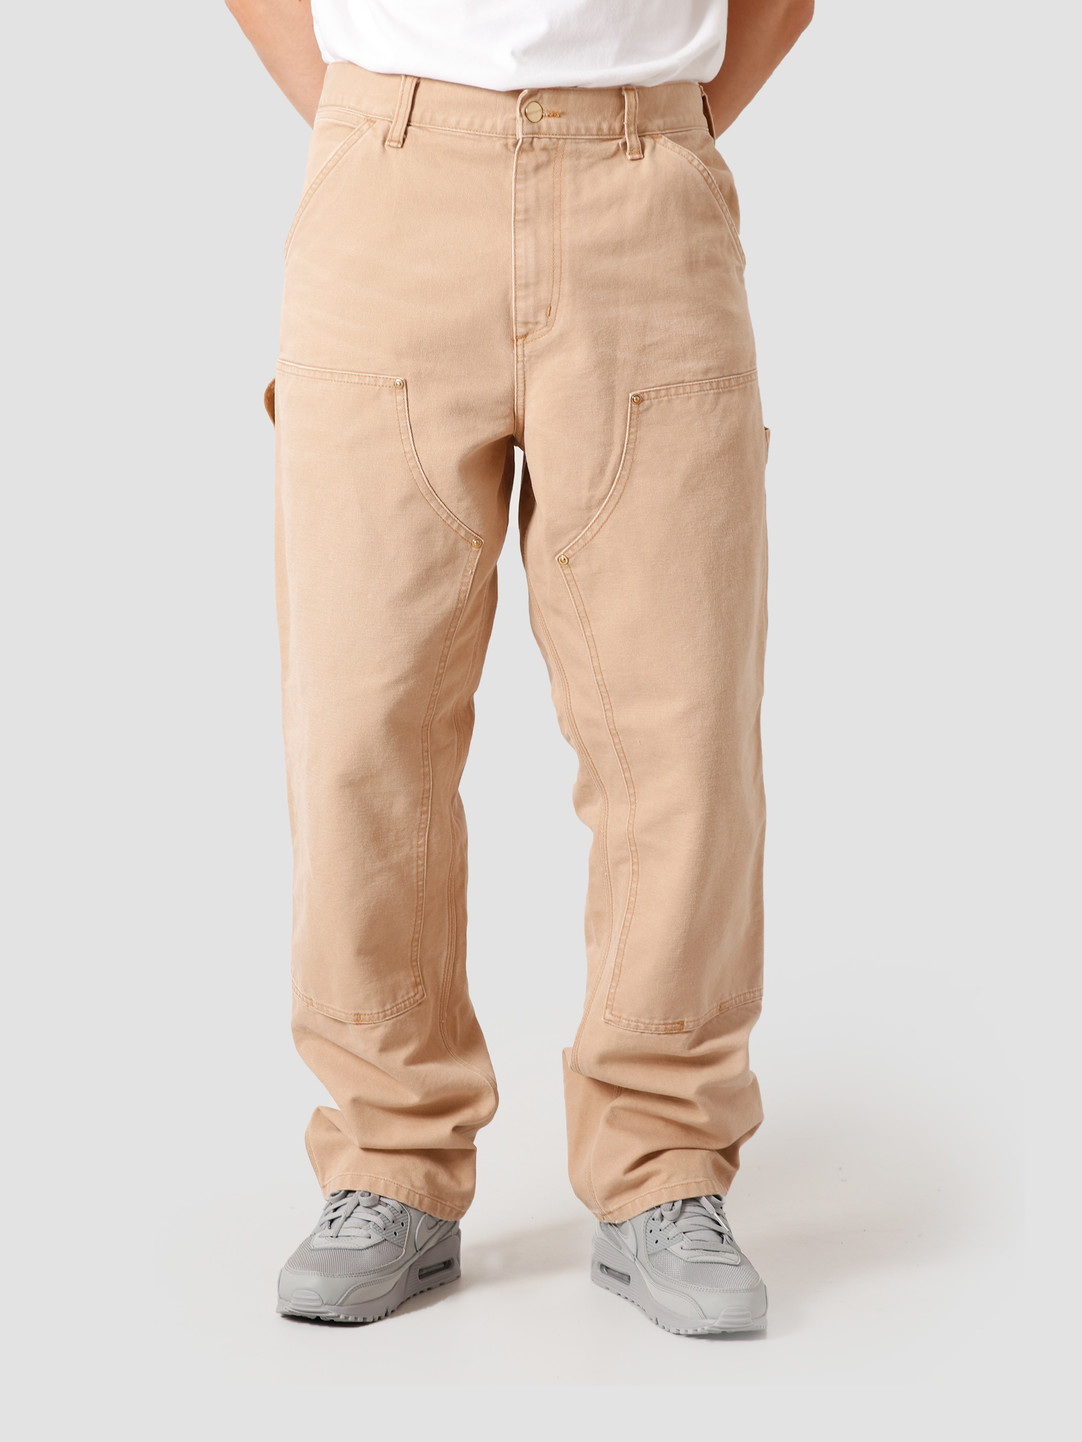 Carhartt WIP Carhartt WIP Double Knee Pant Dusty H Brown I029196-07E3K